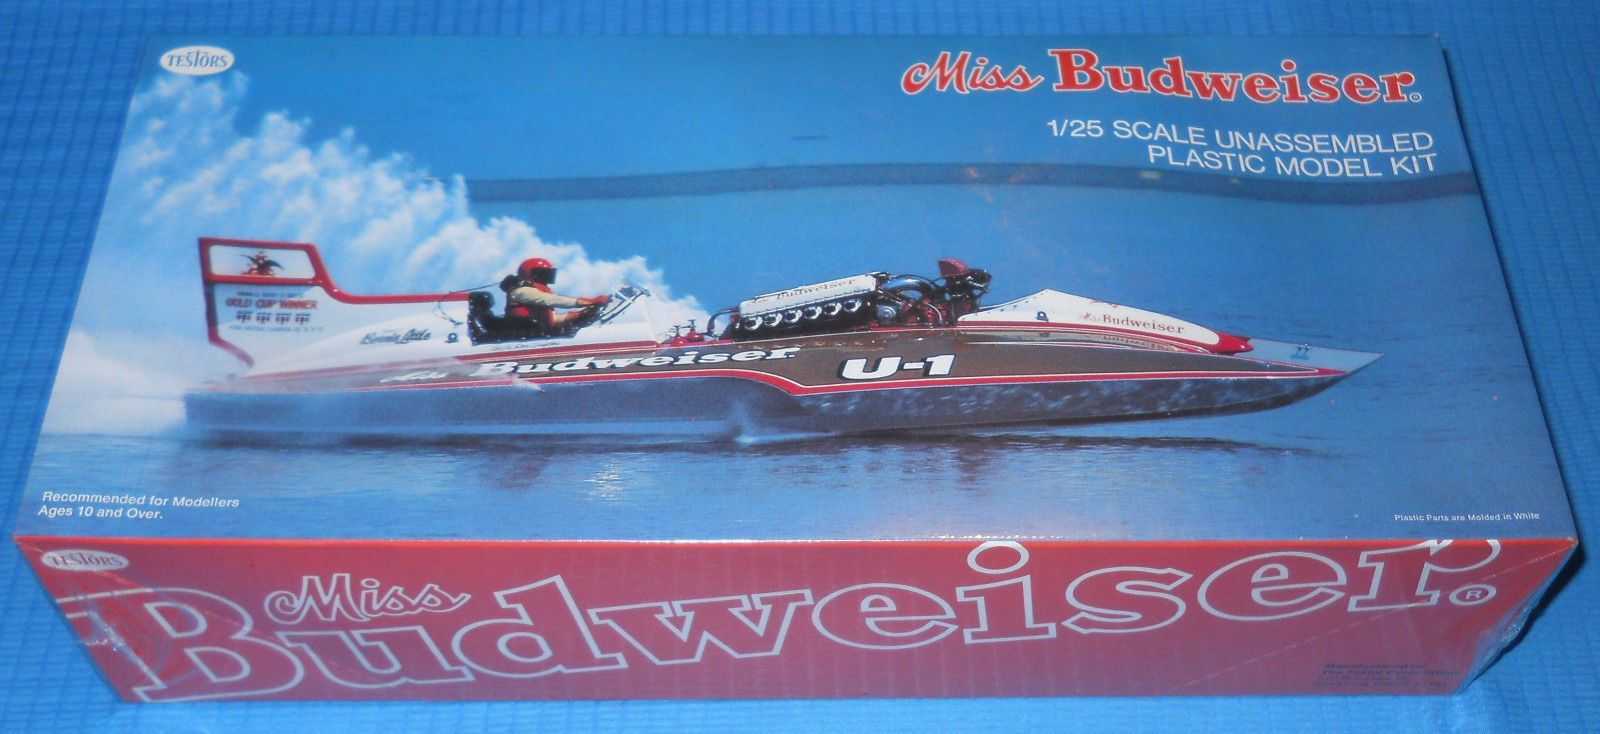 Miss Budweiser Unlimited Hydroplane-1/25 Scale Kit-NEW-FS